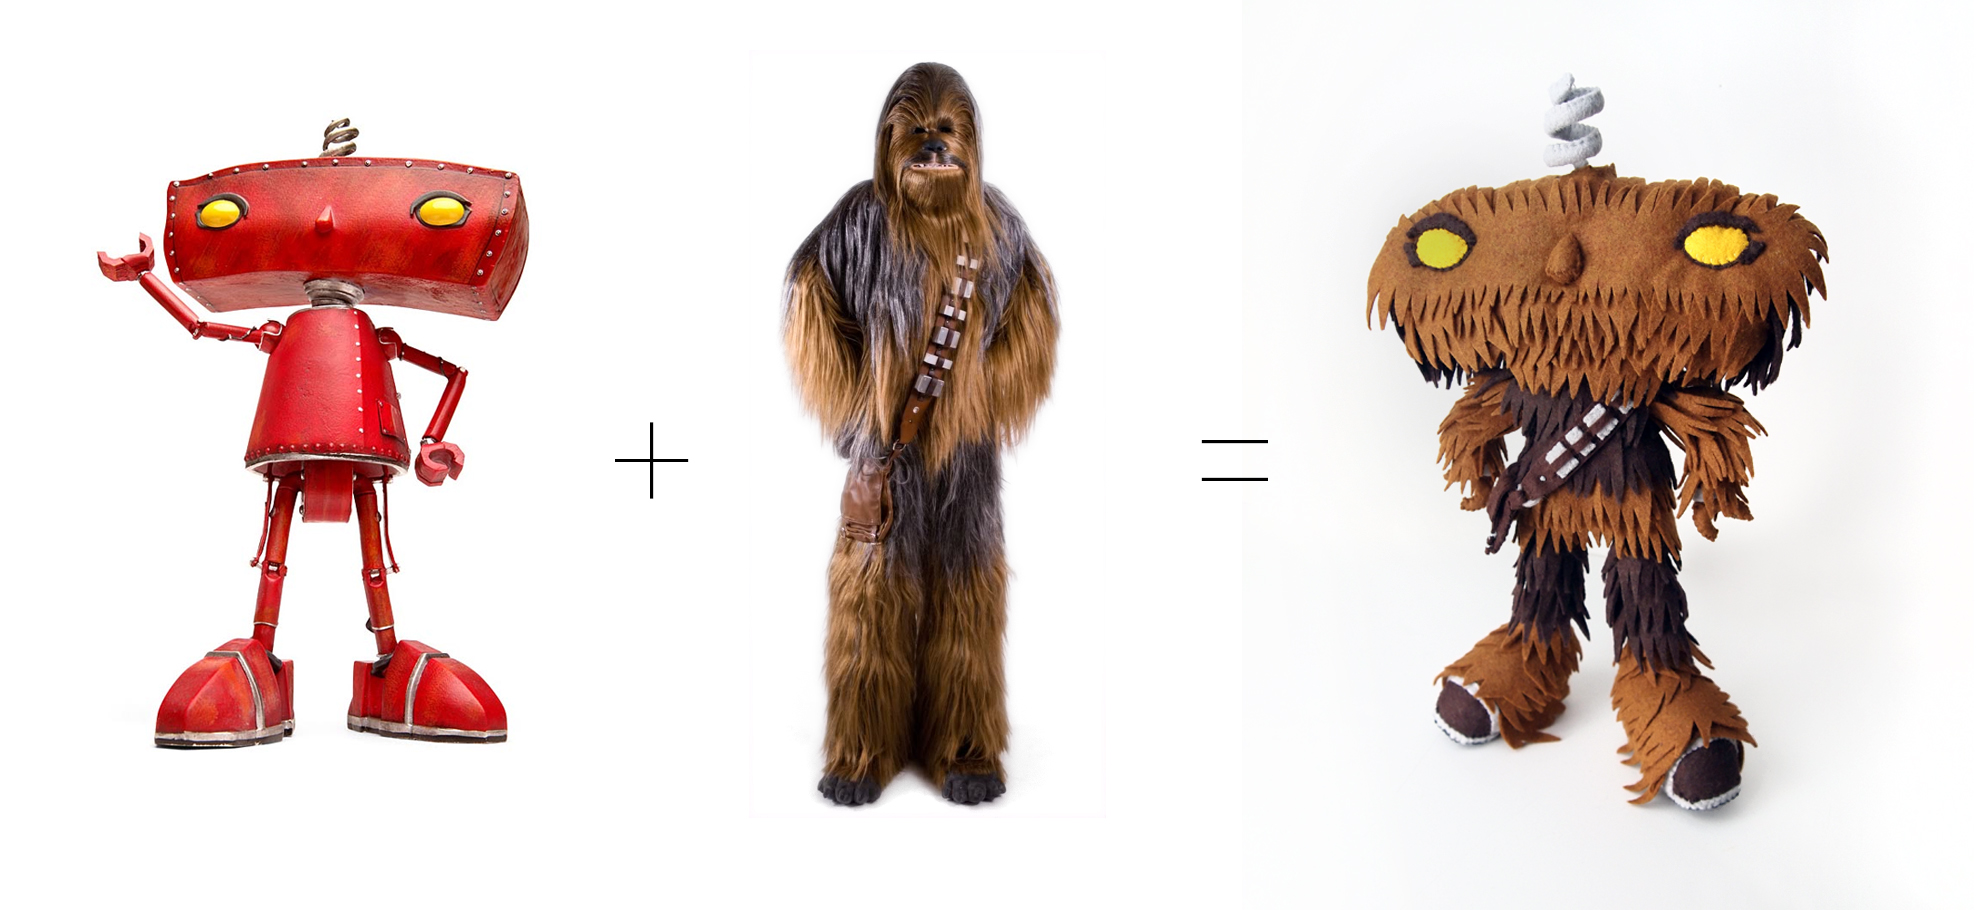 """""""Bad Wookiee""""is a fine art mix of the Bad Robot and Chewbacca."""